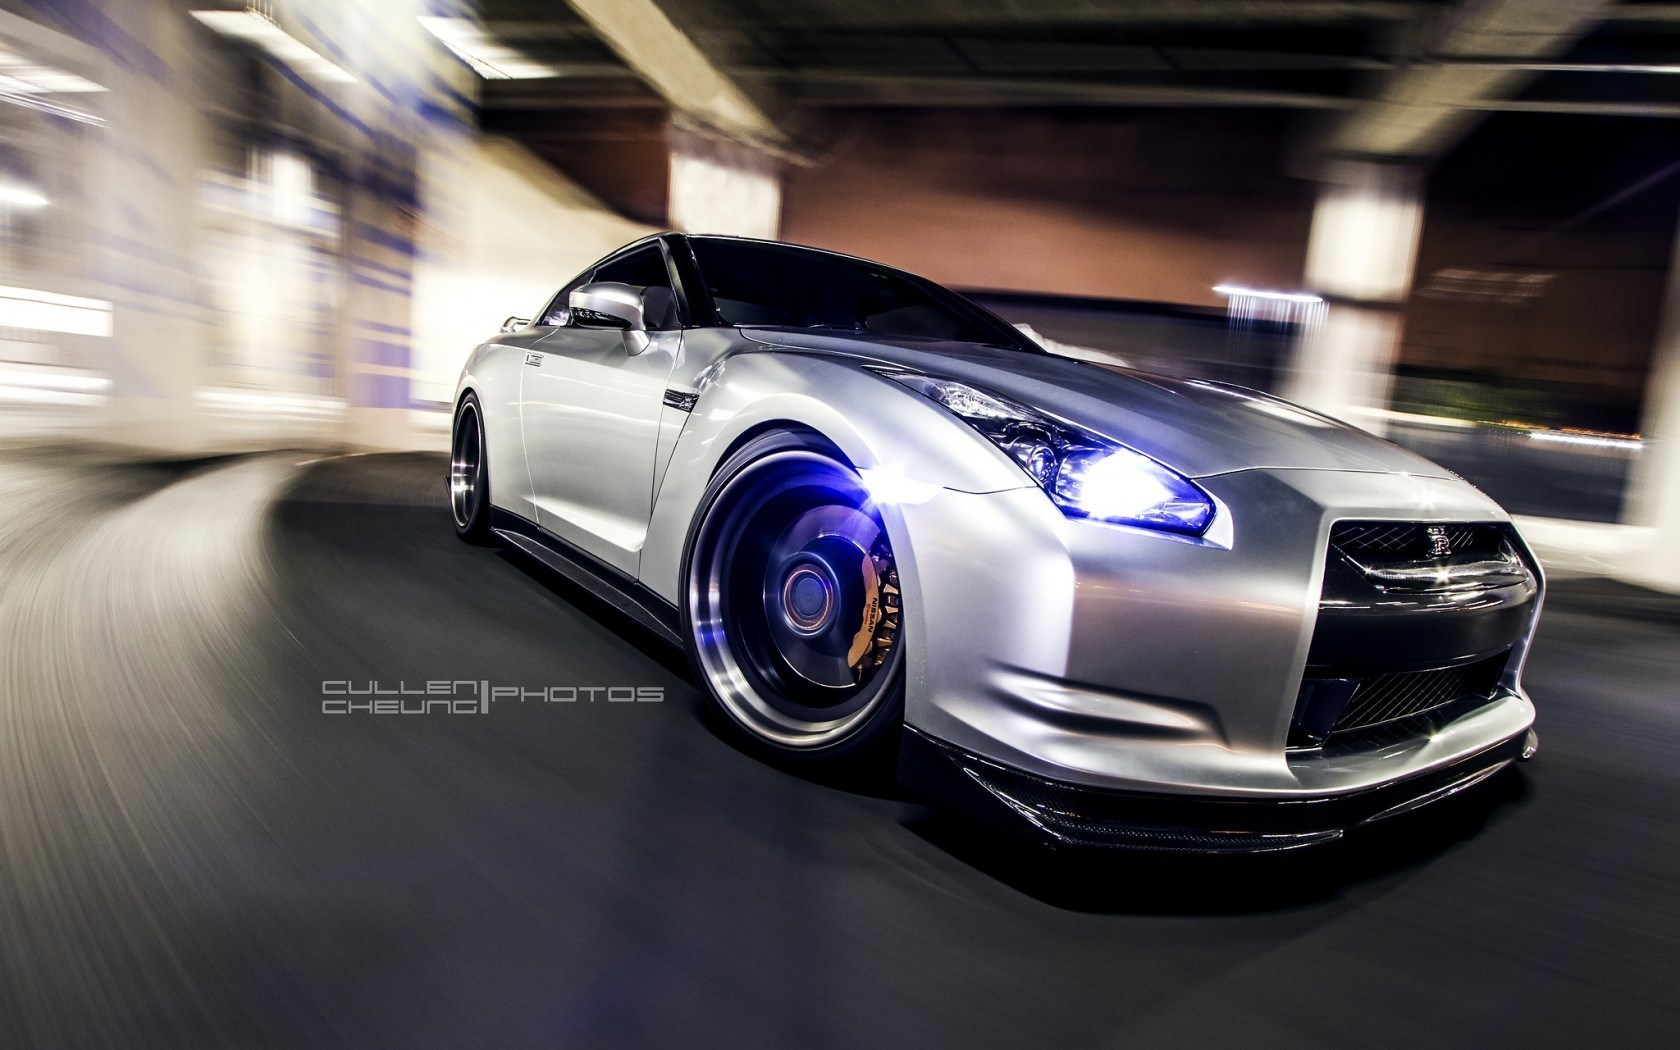 Nissan GT-R R35 Front Car Wheels Tuning HD Wallpaper